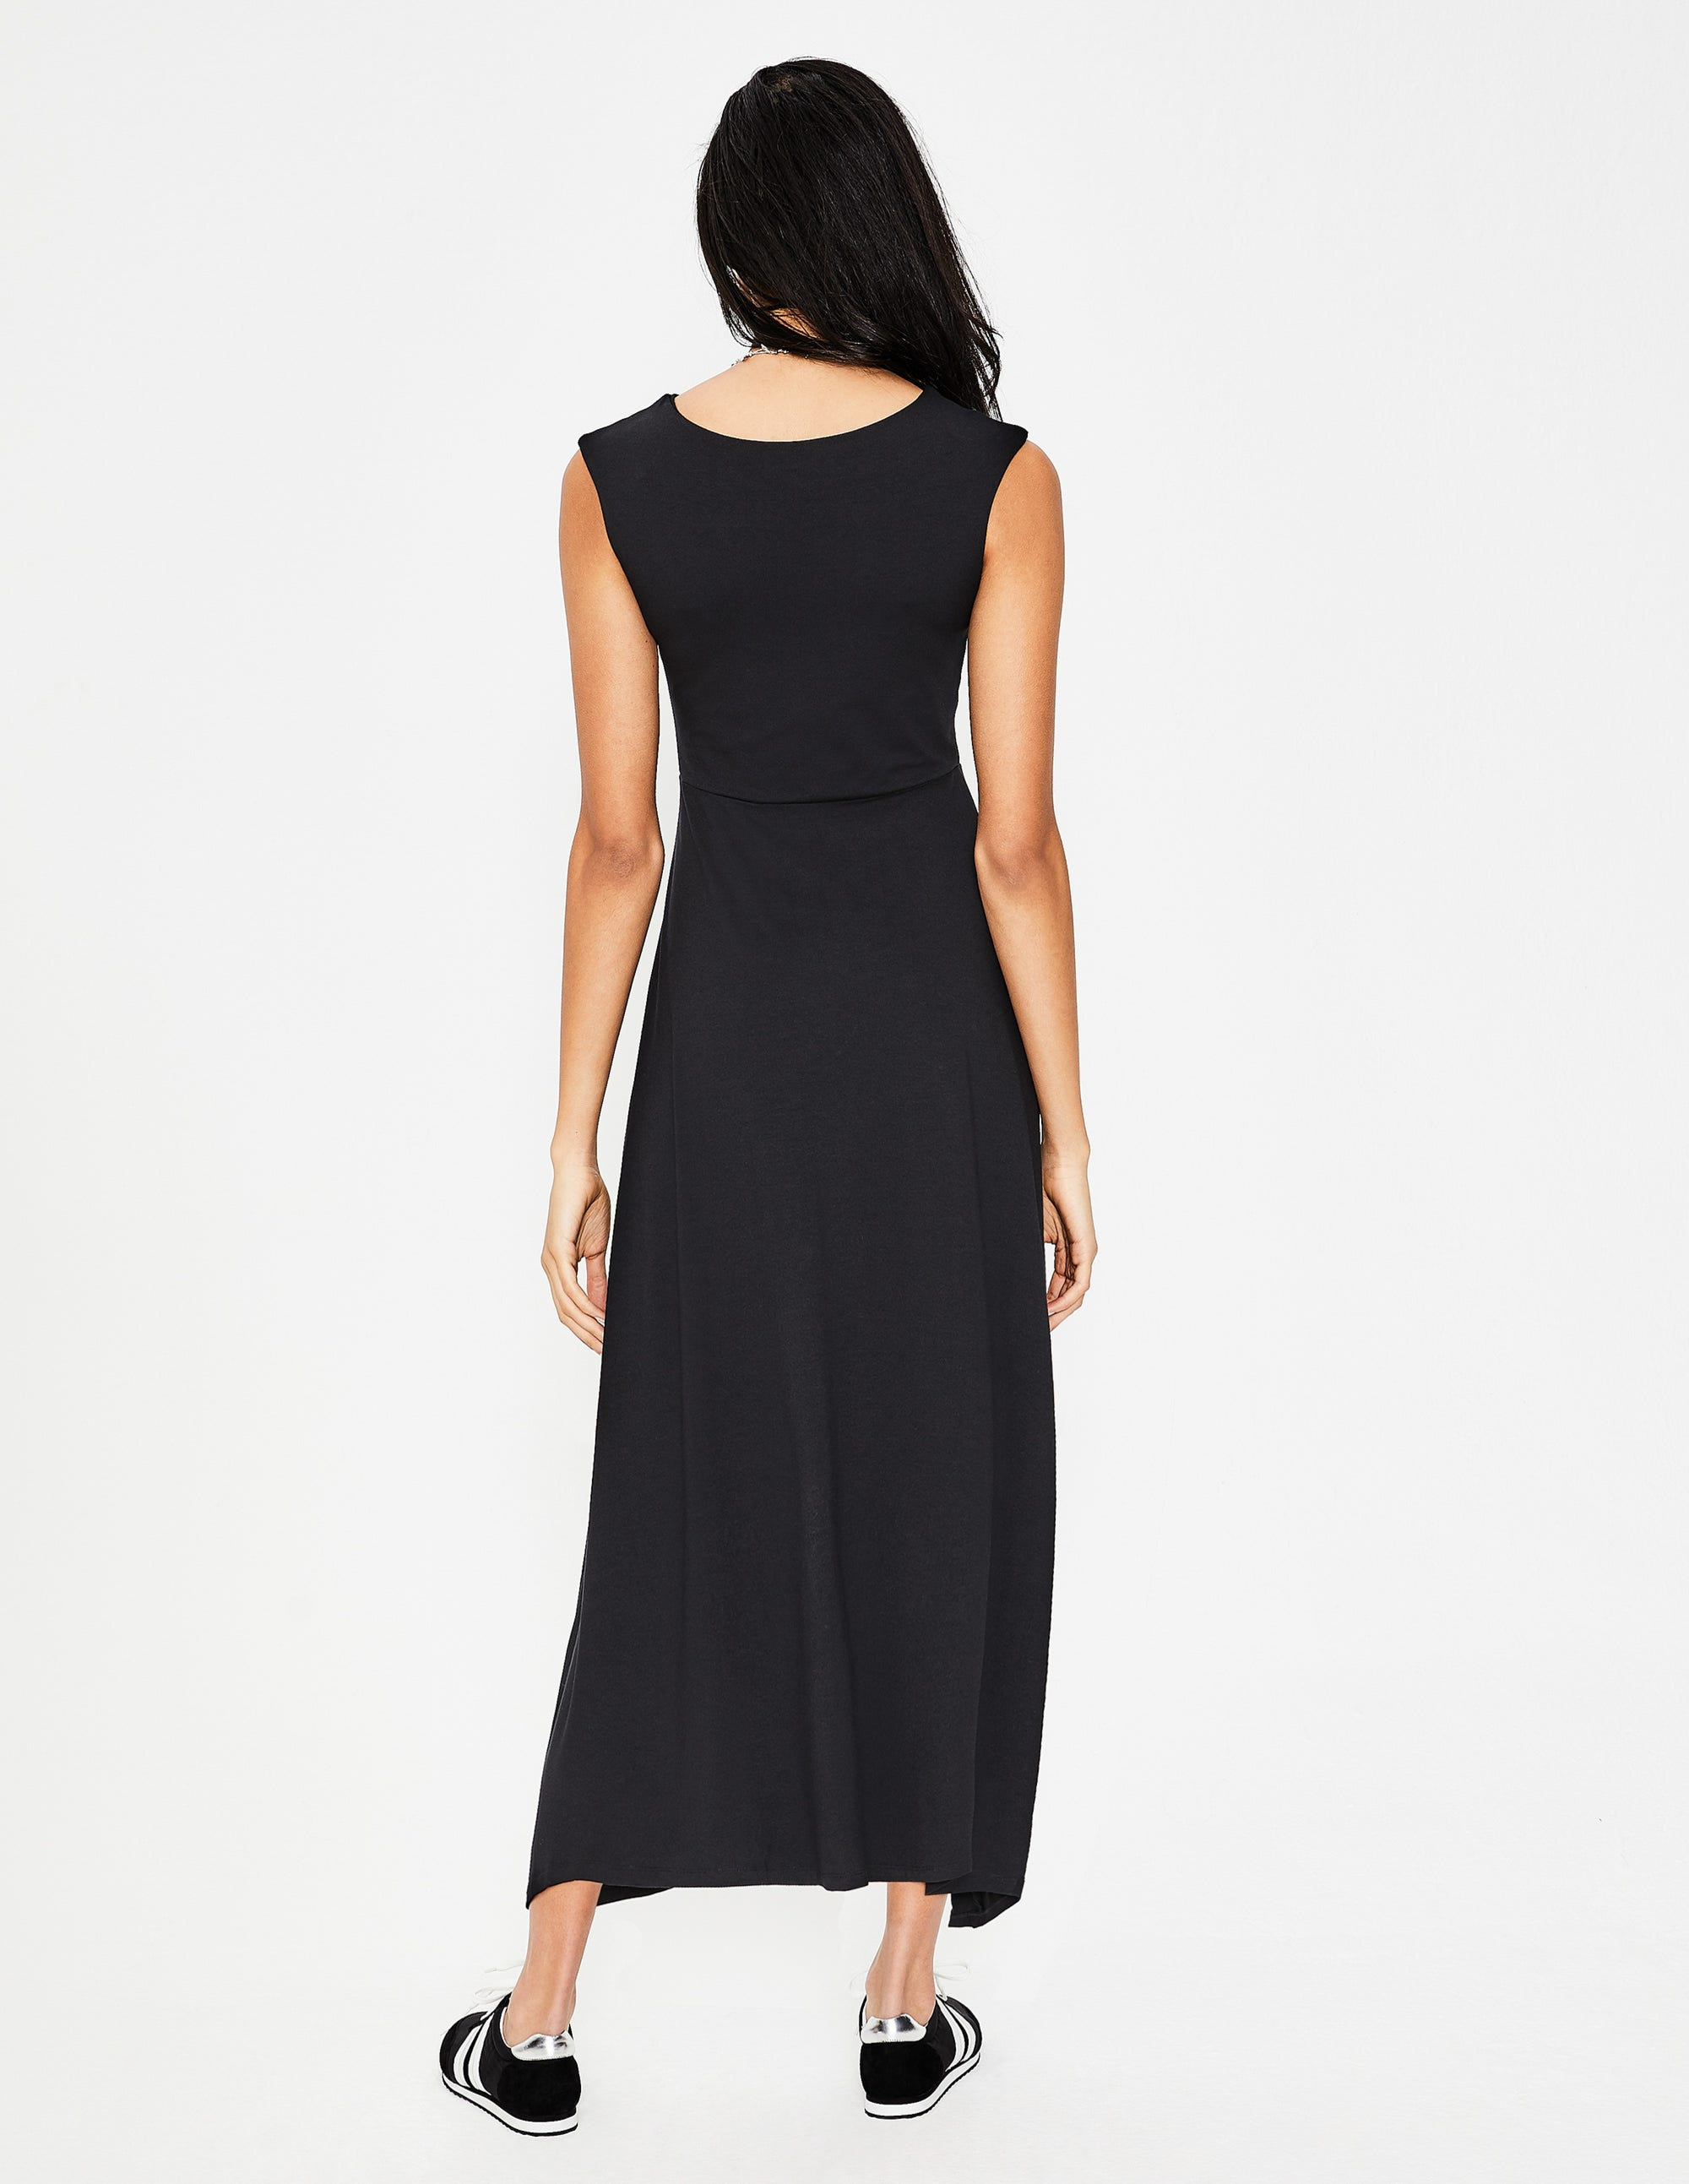 cd1de77690 Polly Jersey Midi Dress - Black